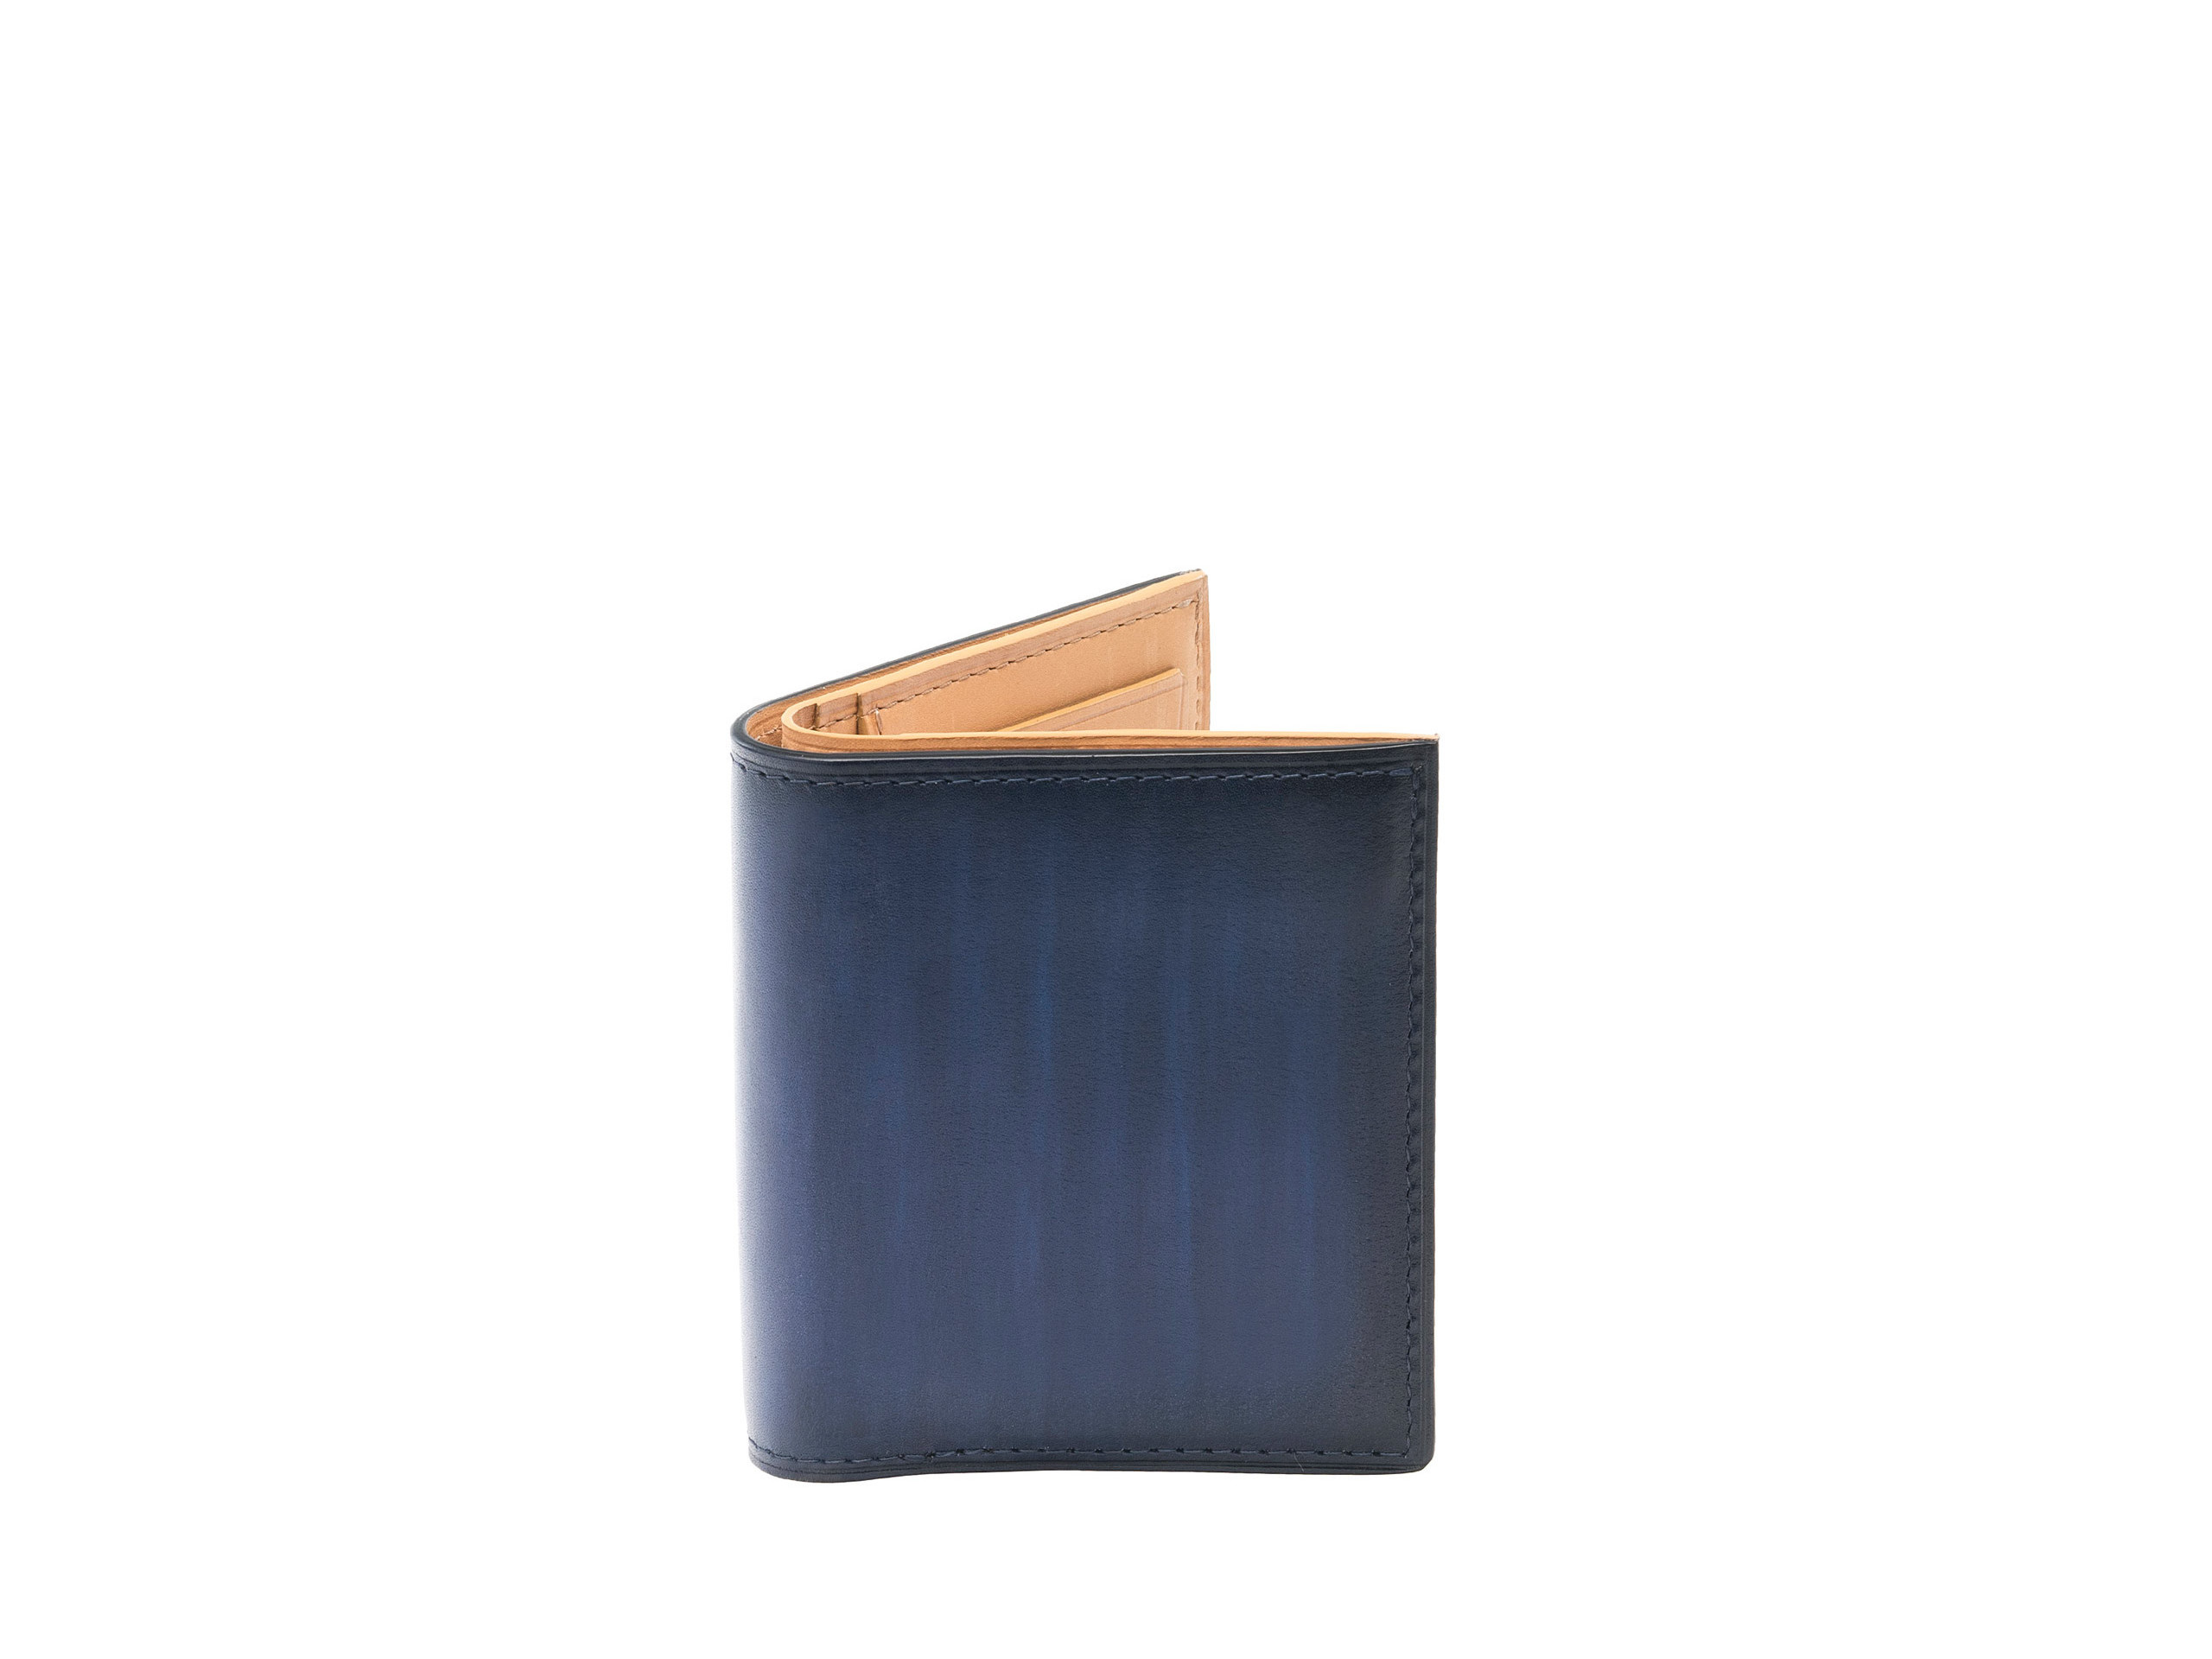 Product Shot of Square Fold Navy Wallet